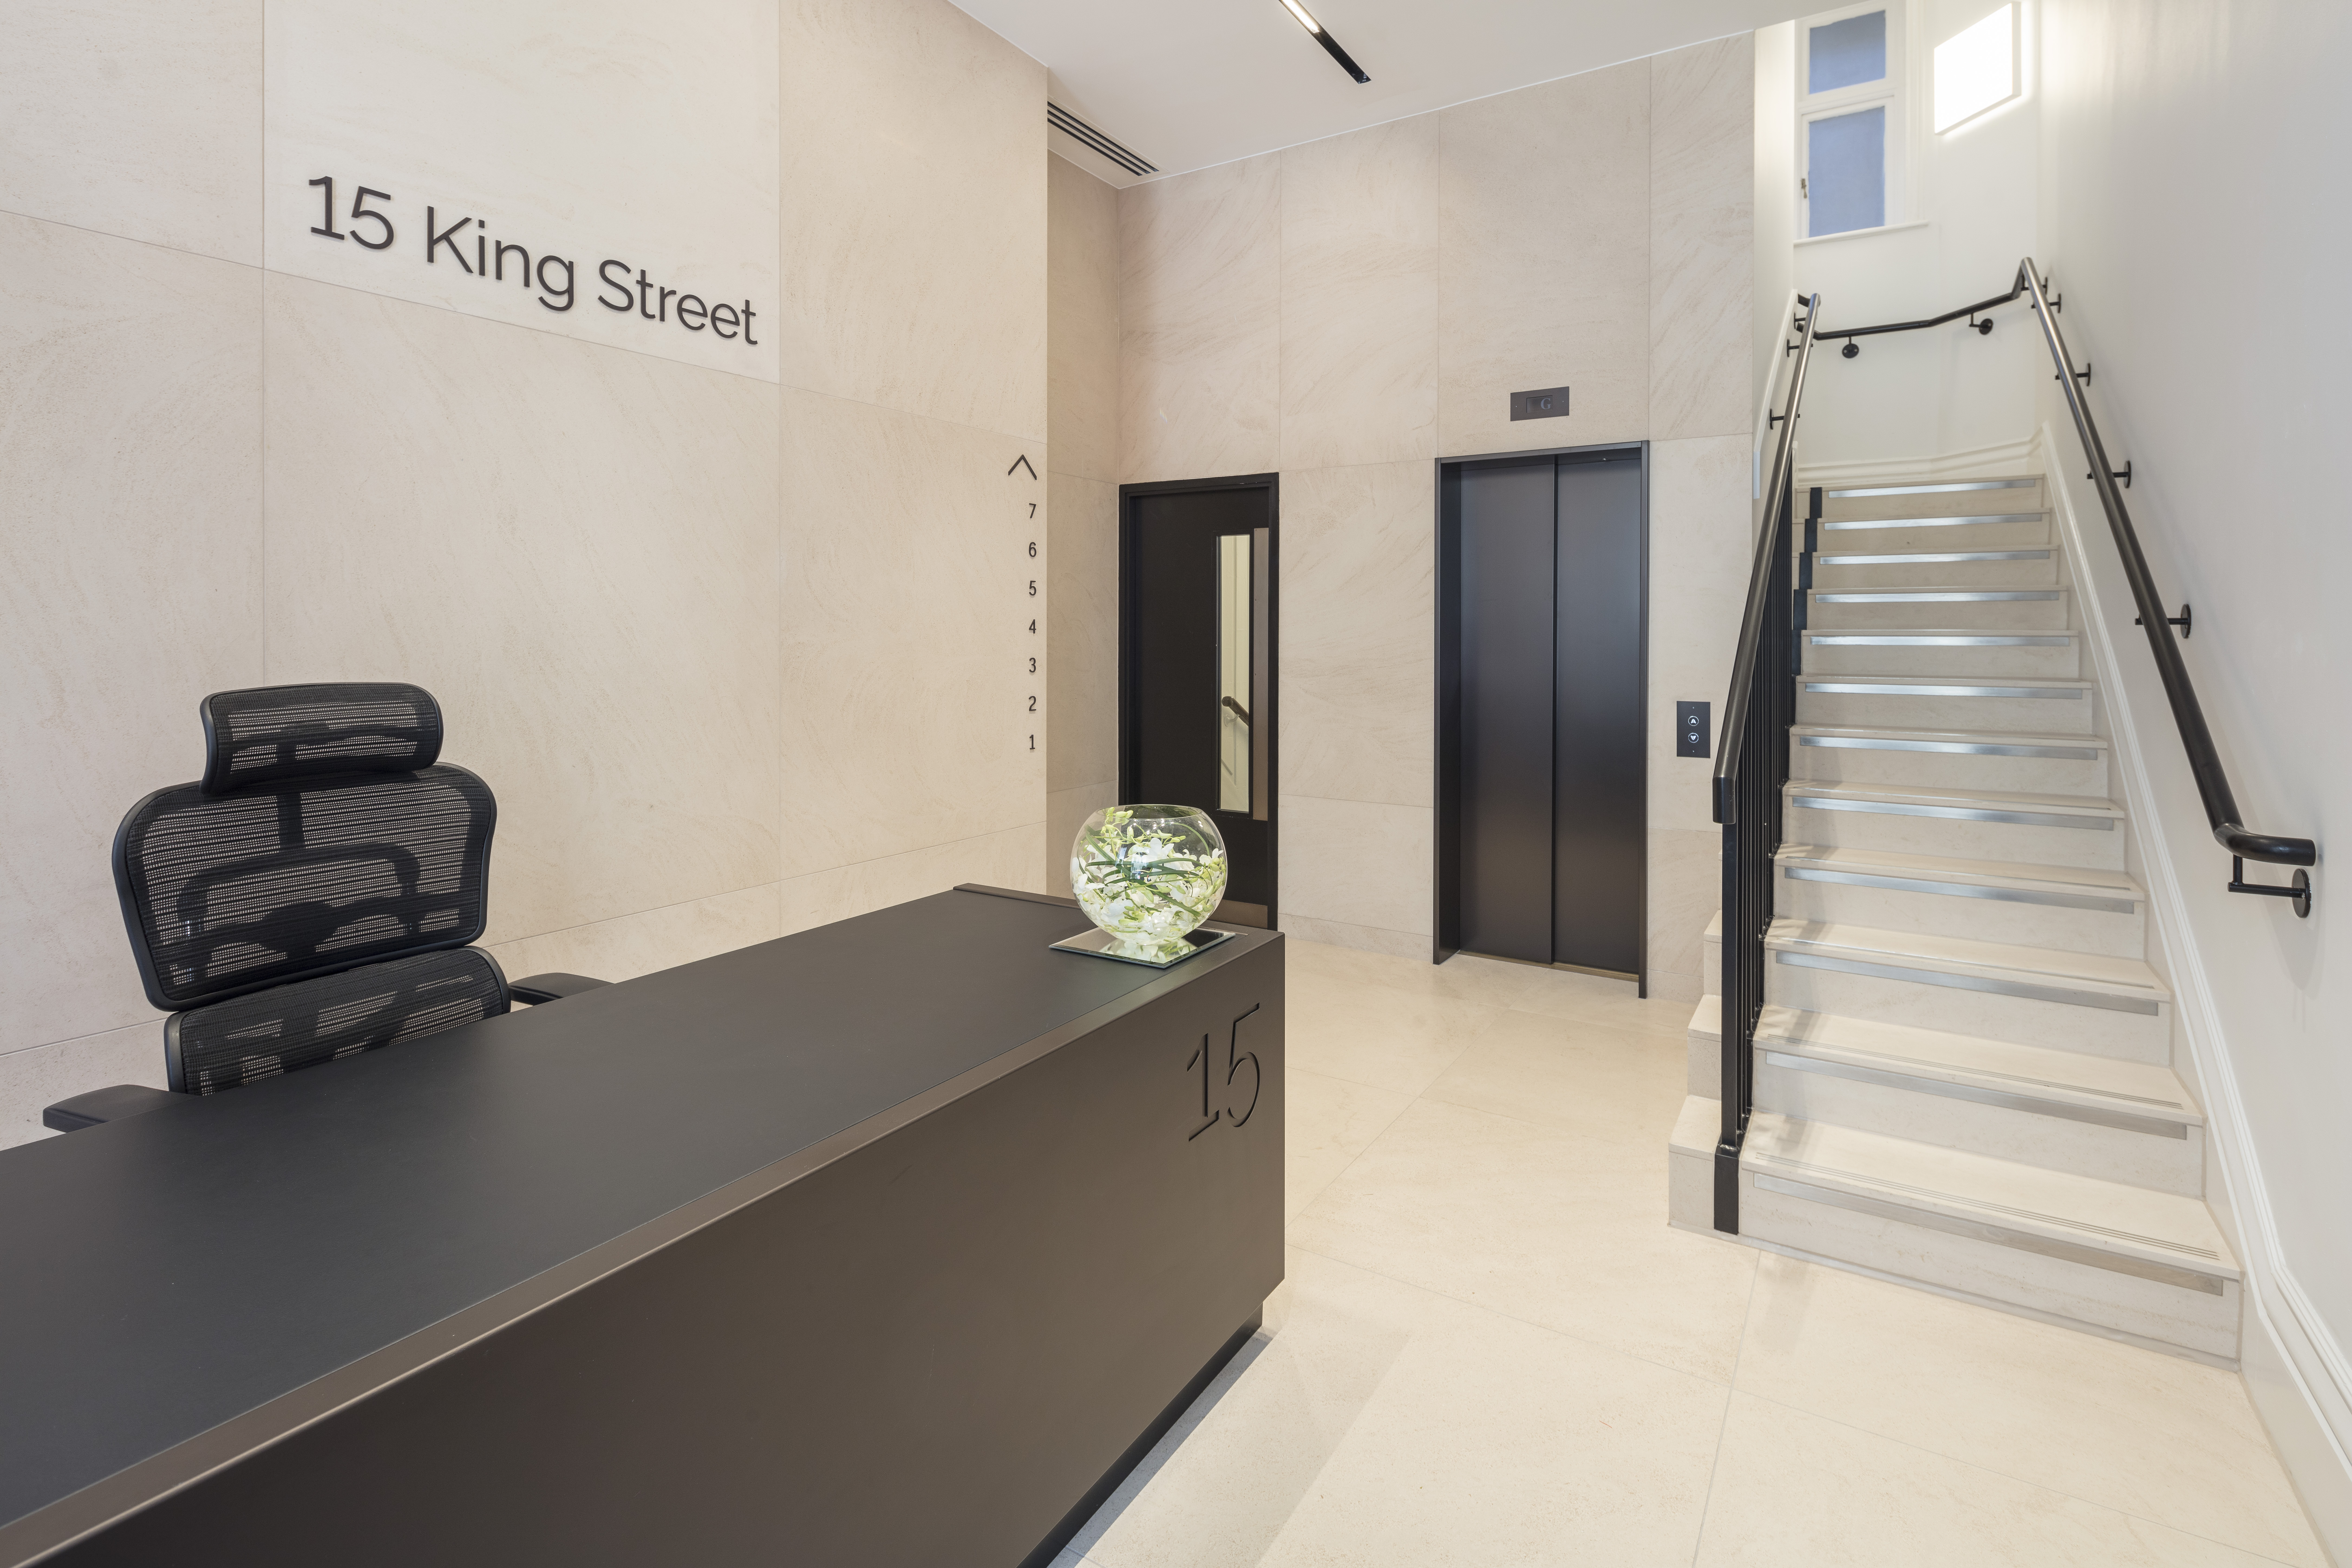 15 King Street – Crown Office Lettings